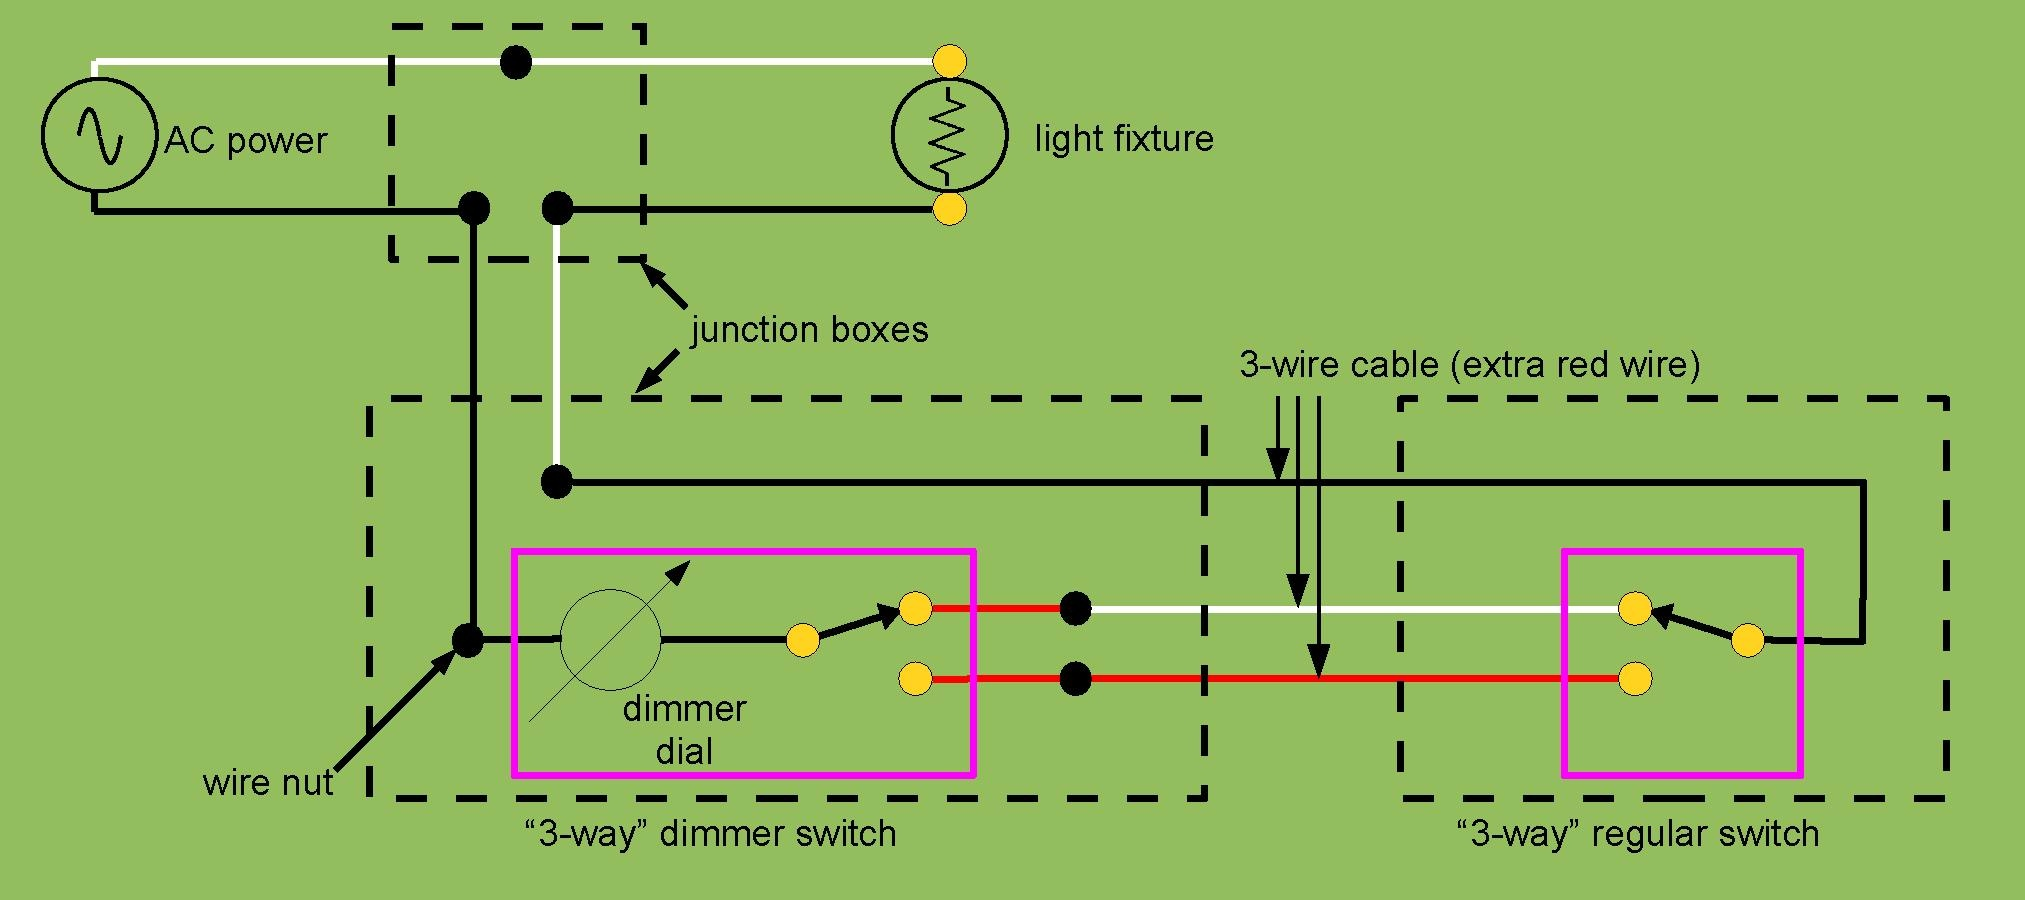 File:3-way dimmer switch wiring.pdf - Wikimedia Commons | 3 Way Dimmer Switch Wiring Diagram |  | - Wikimedia Commons